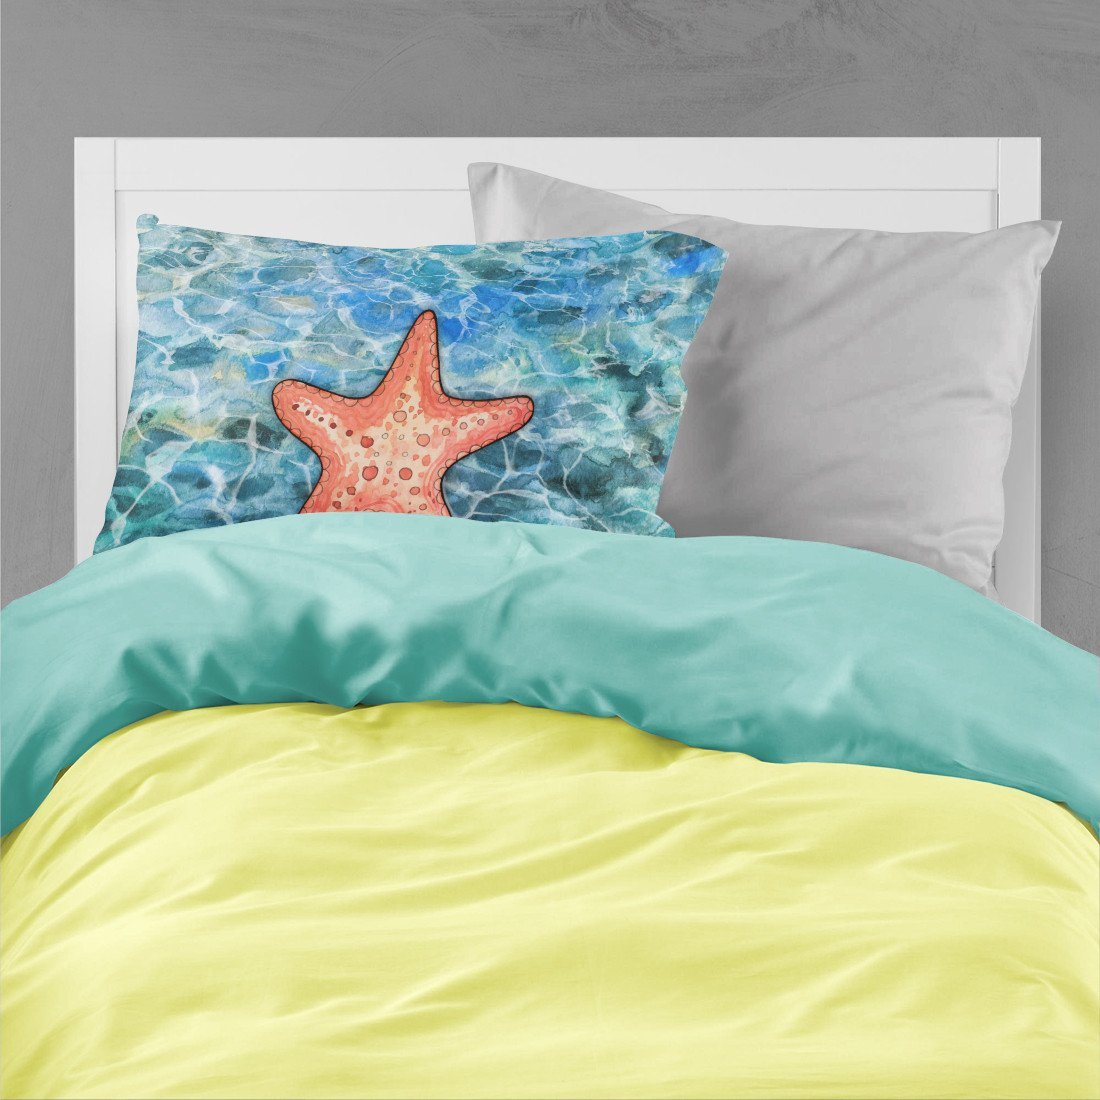 Starfish Fabric Standard Pillowcase BB5341PILLOWCASE by Caroline's Treasures